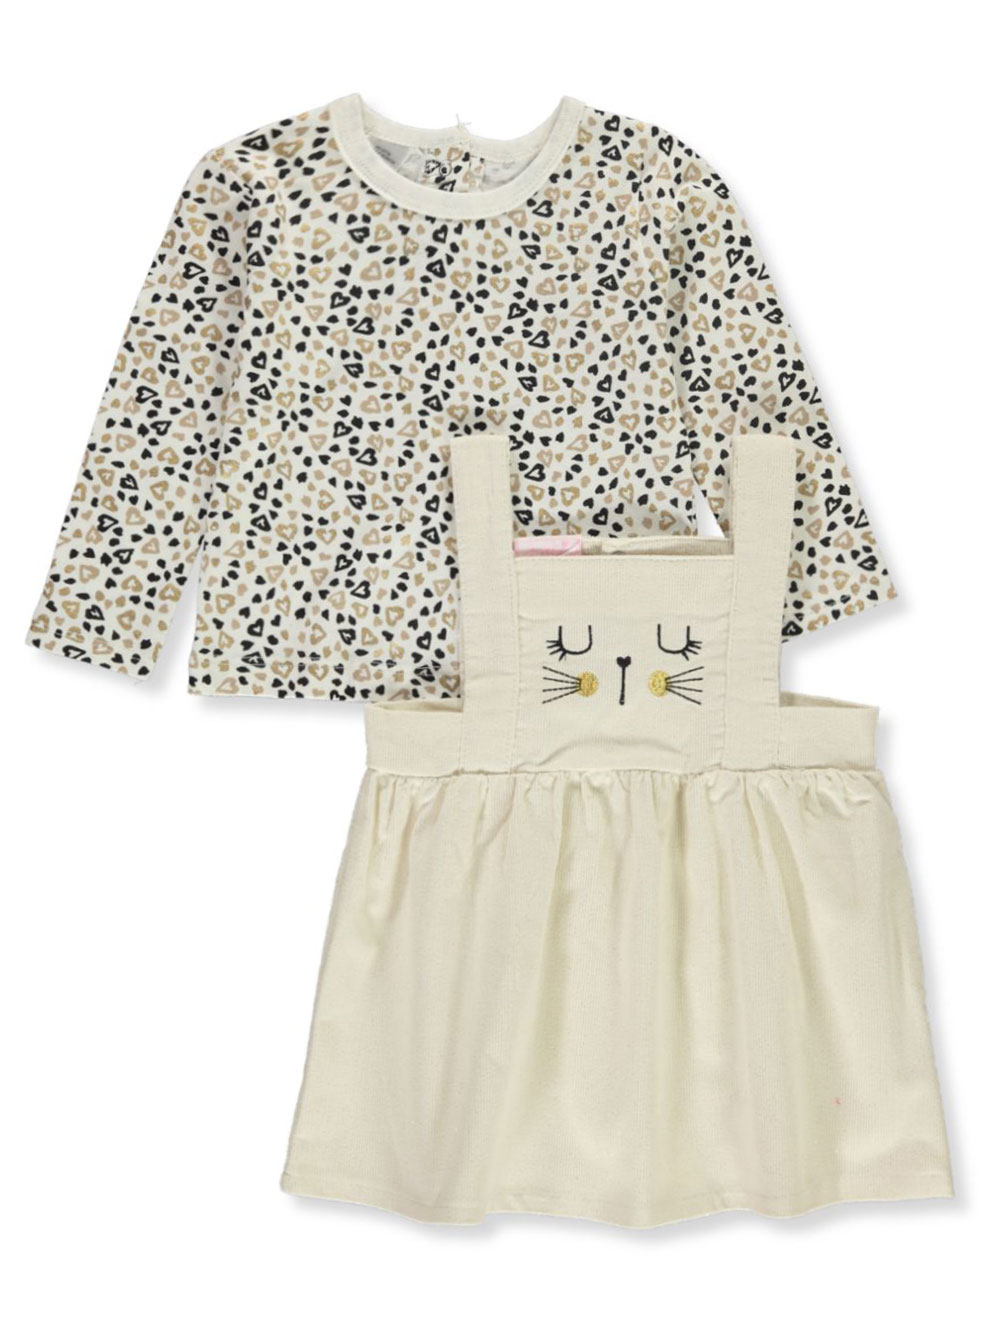 Casual Dresses 2-Piece Jumper Set Outfit